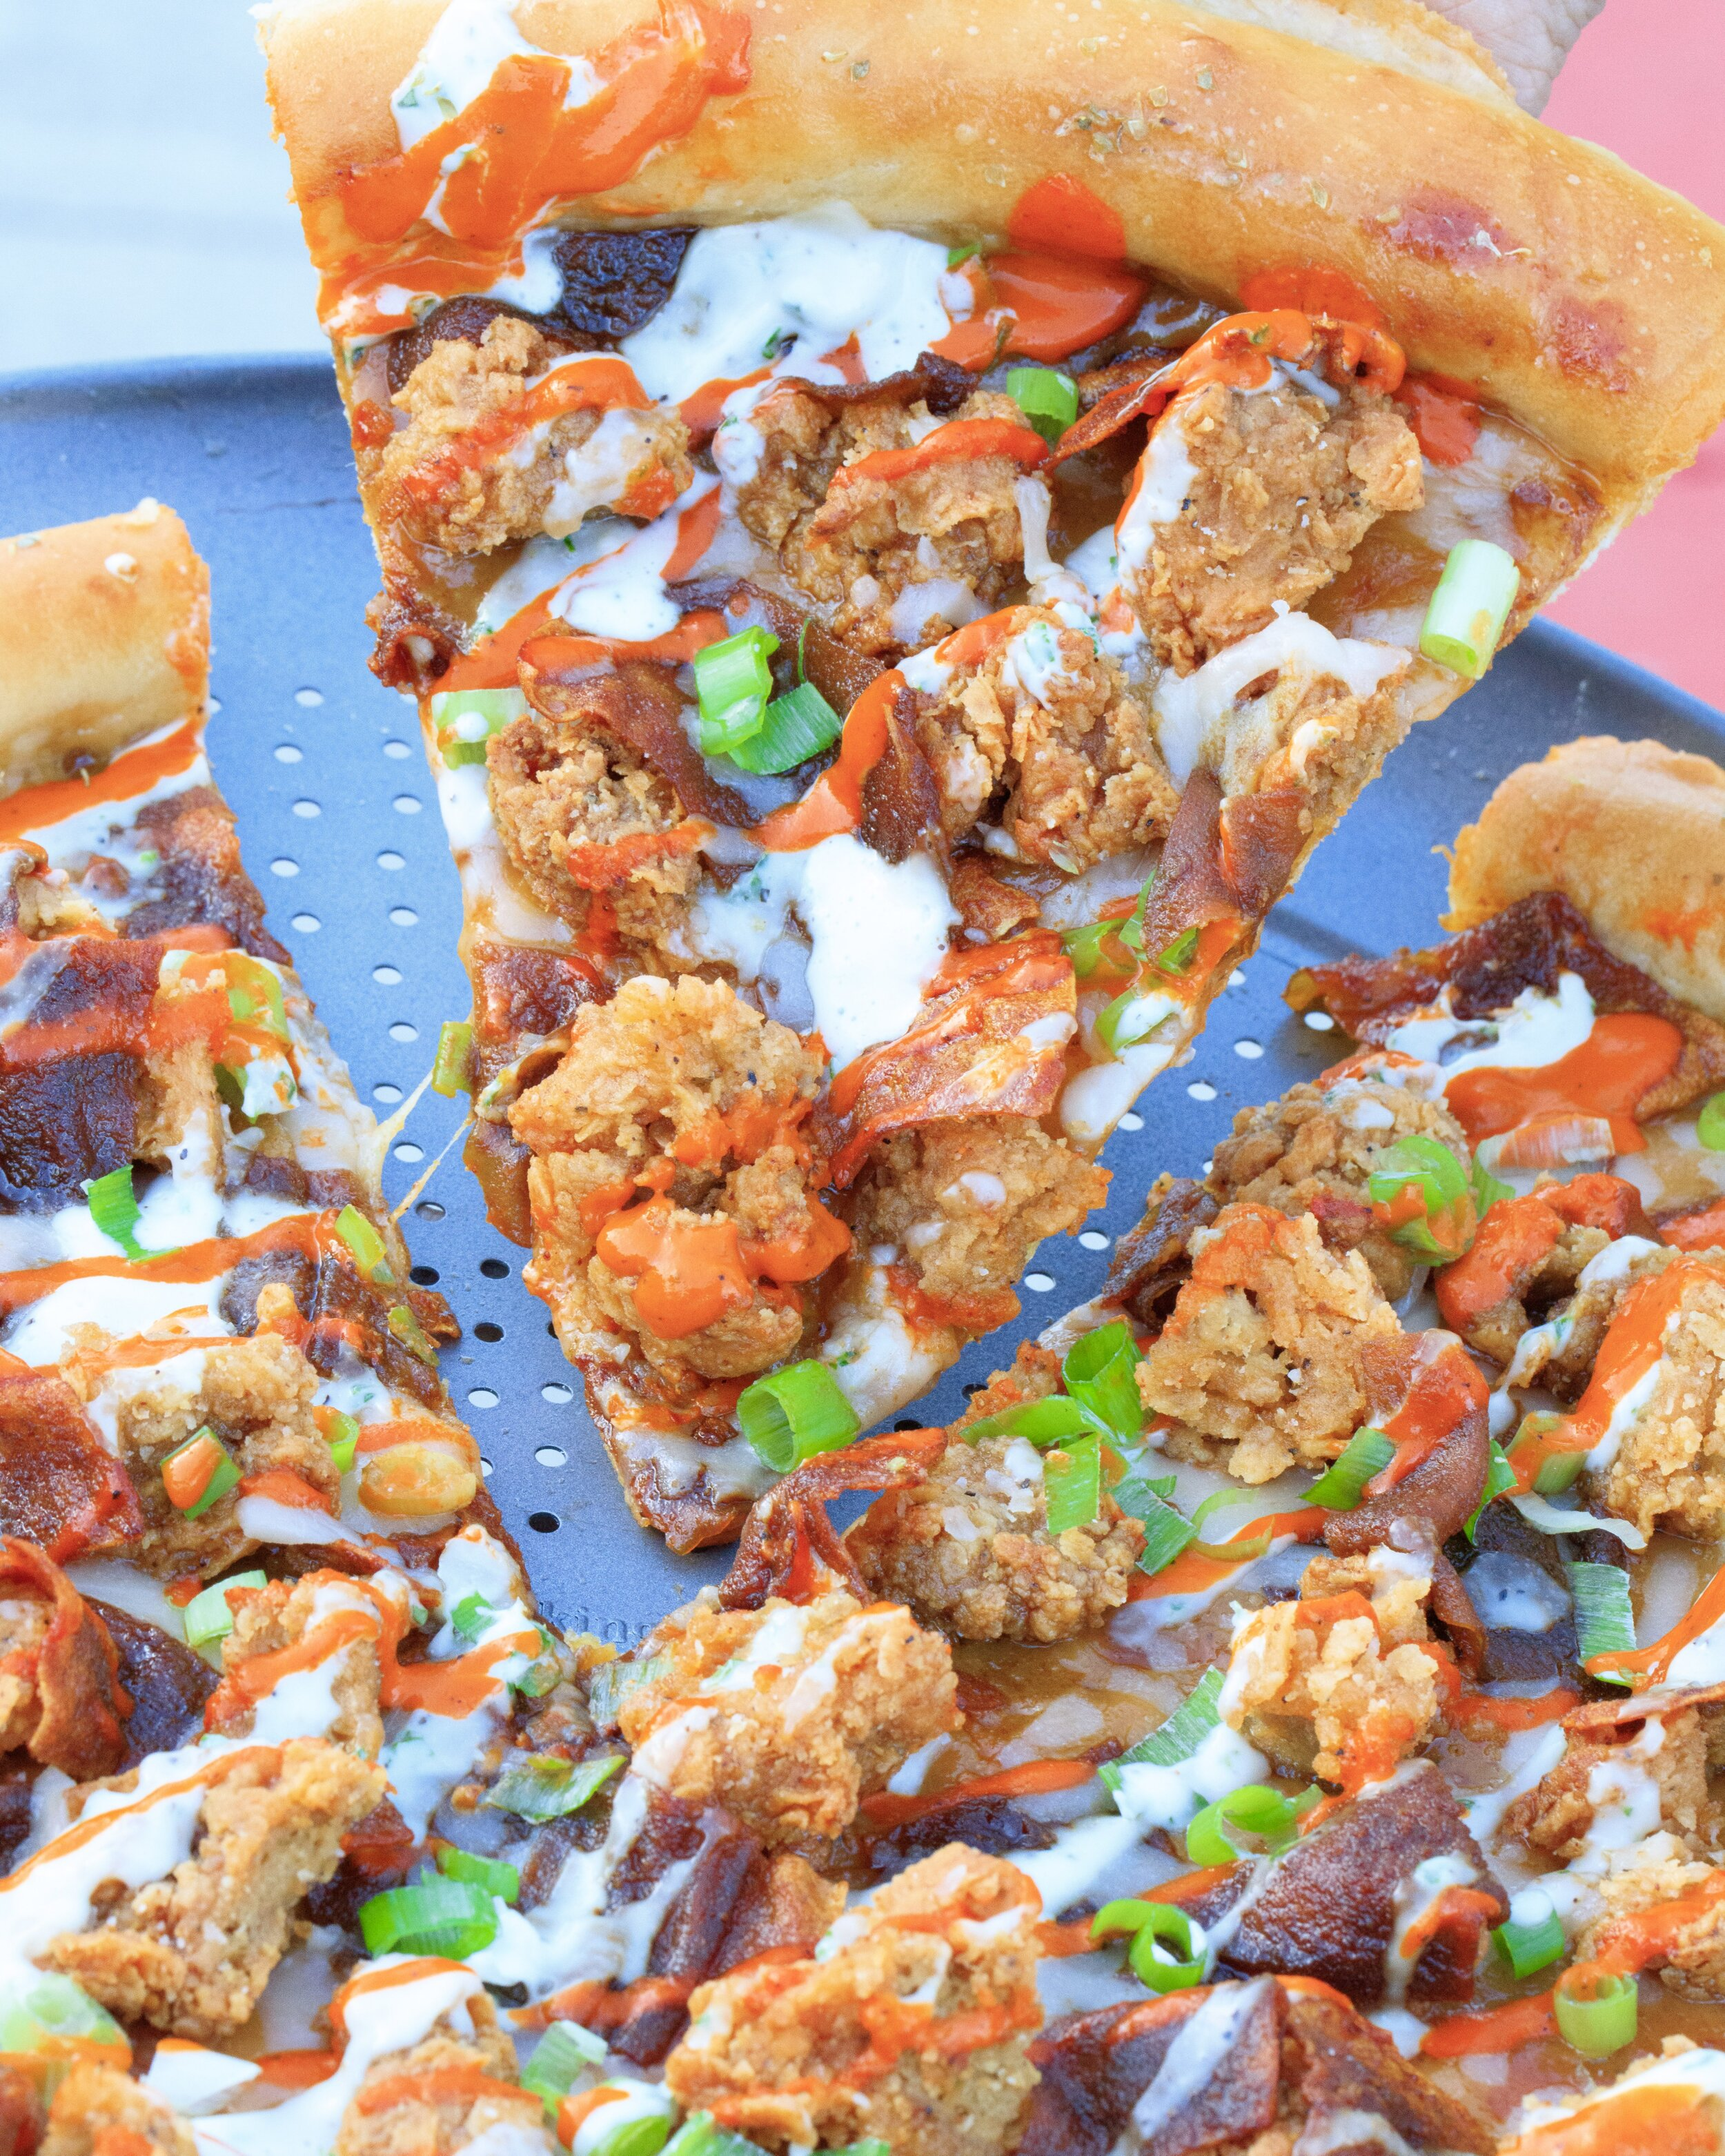 ATLAS MONROE VEGAN FRIED CHICKEN BACON PIZZA-5724x7155.jpeg